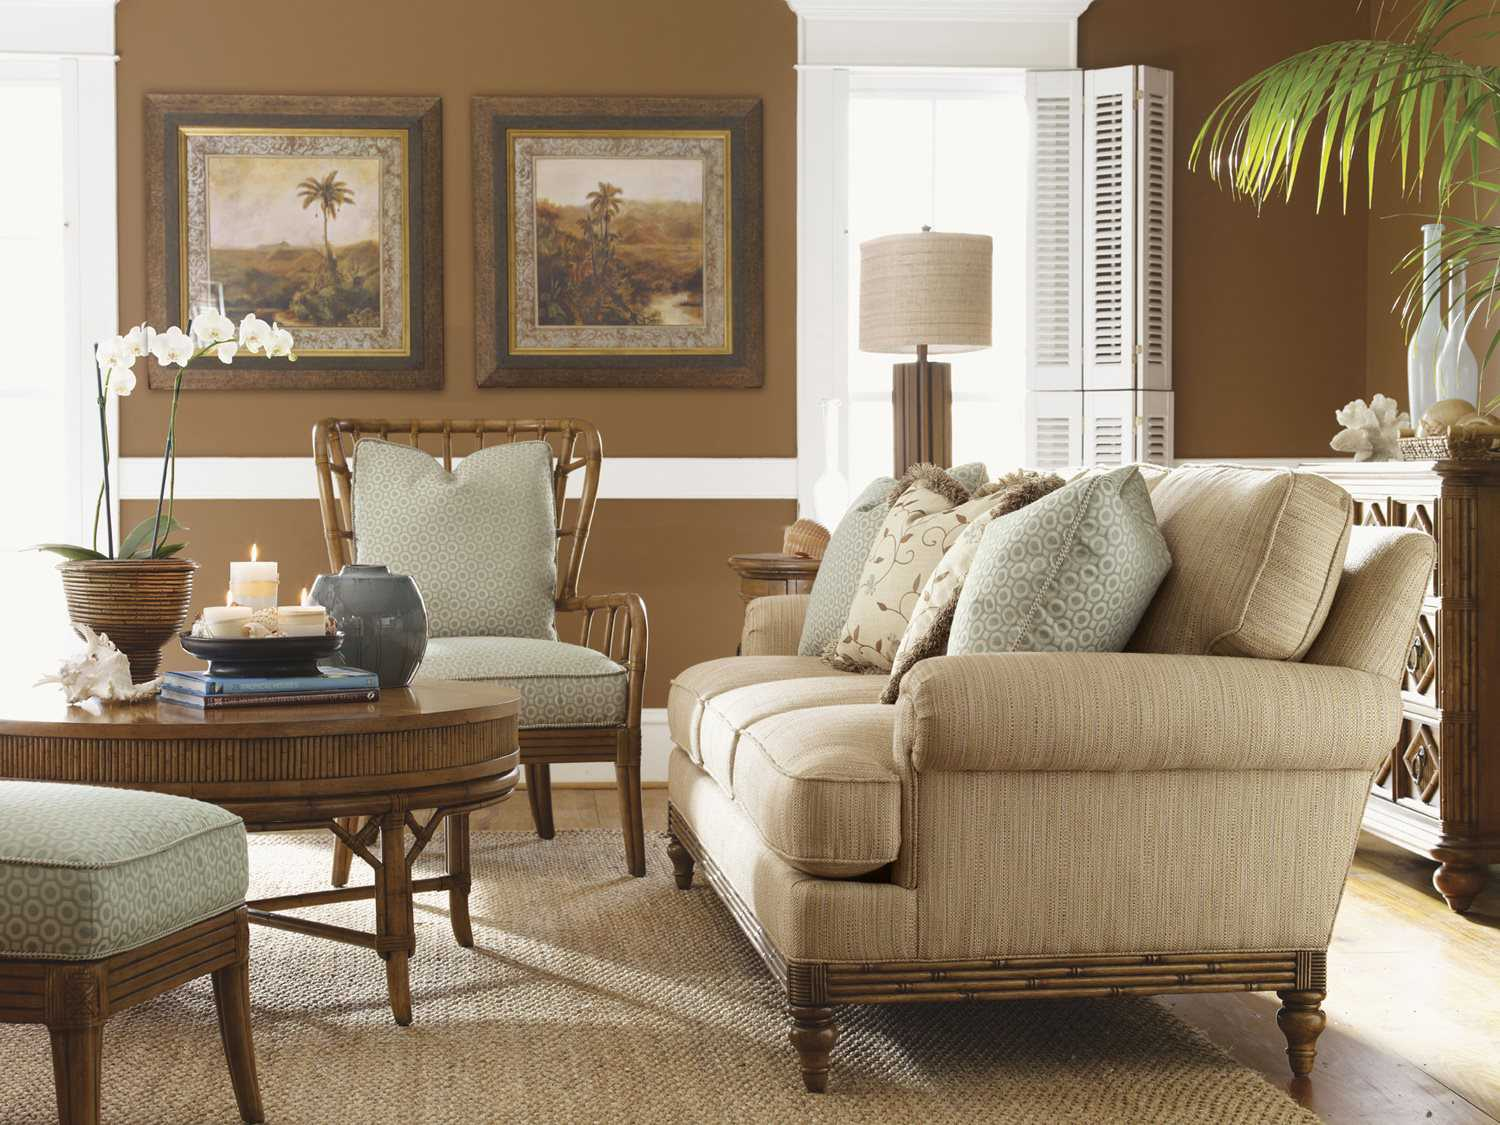 Tommy Bahama Living Room Set. Hobby Lobby Room Divider. Beautiful Dining Room Sets. Oval Dining Room Tables. Dorm Room Shelves. Conference Room Lighting Design. Powder Room Bathroom Ideas. Design For A Room. Laundry Room Tiles